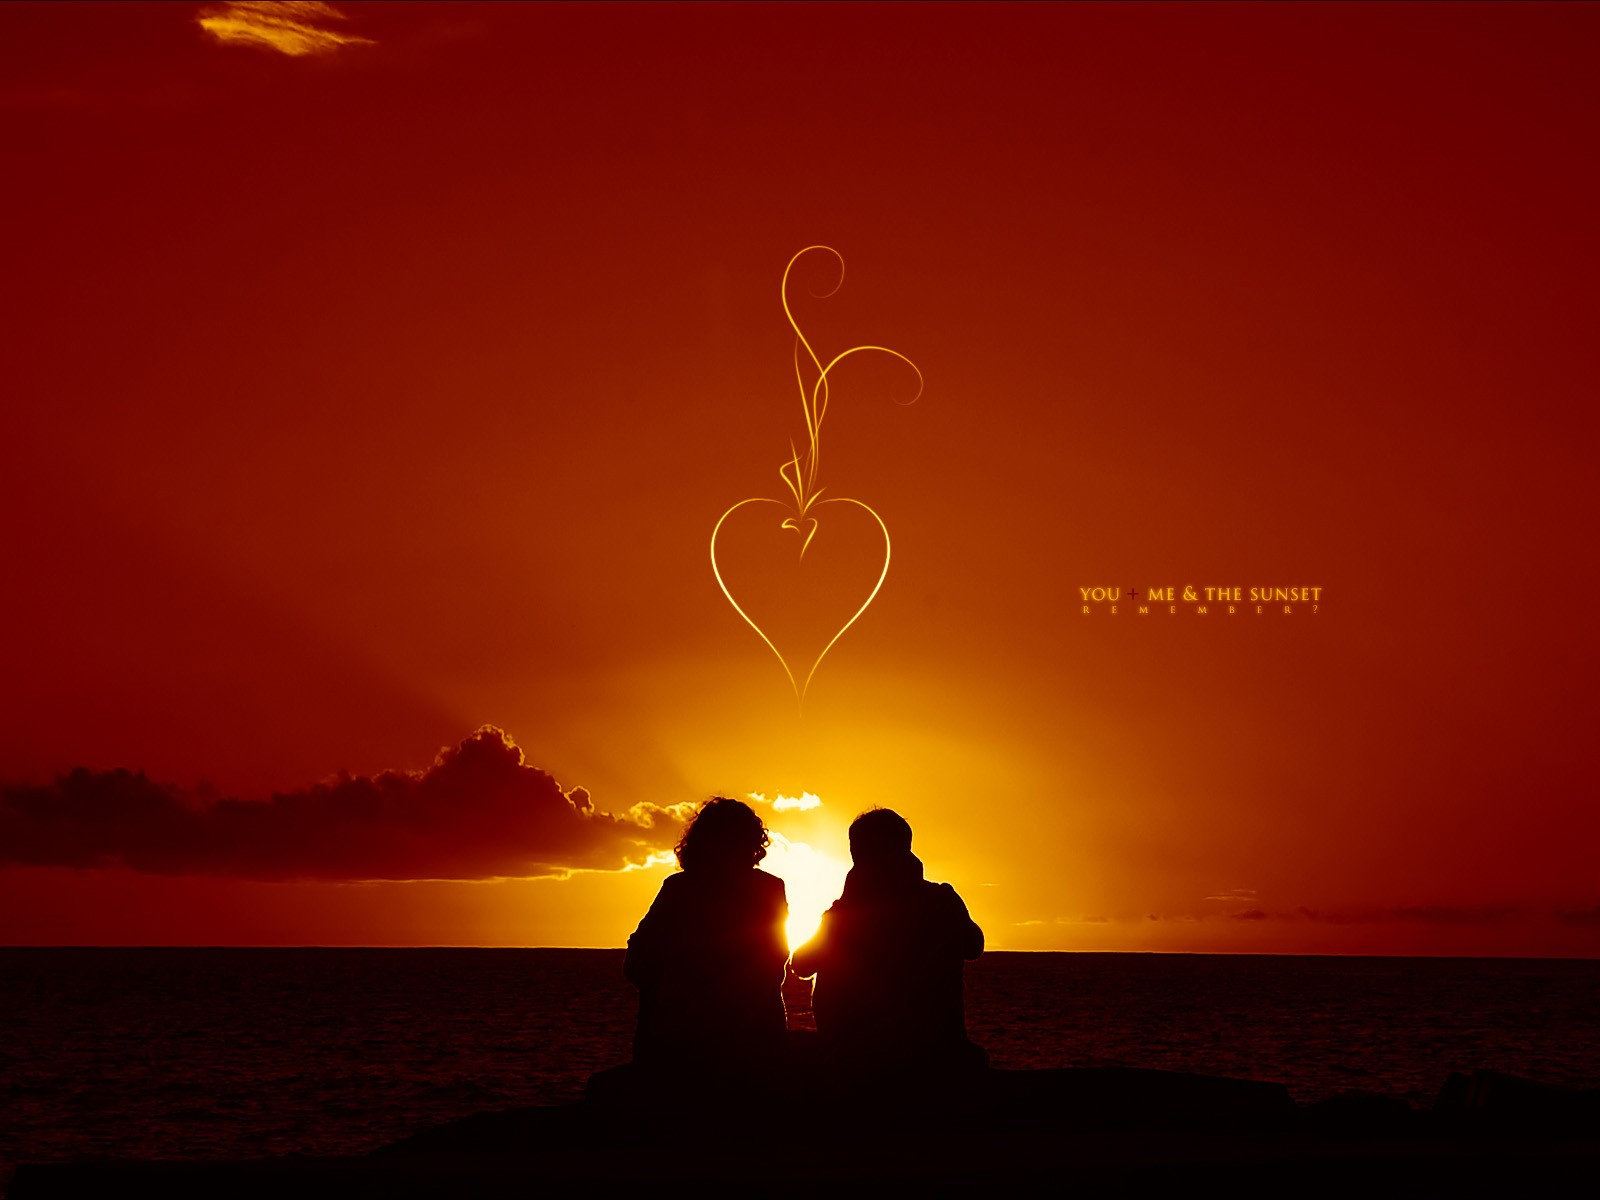 http://3.bp.blogspot.com/-i4OCWHrRn5g/TiwO03EcuhI/AAAAAAAAAIY/7XdYC8ac-LE/s1600/sunset-and-couple-wallpapers_10276_1600x1200.jpg